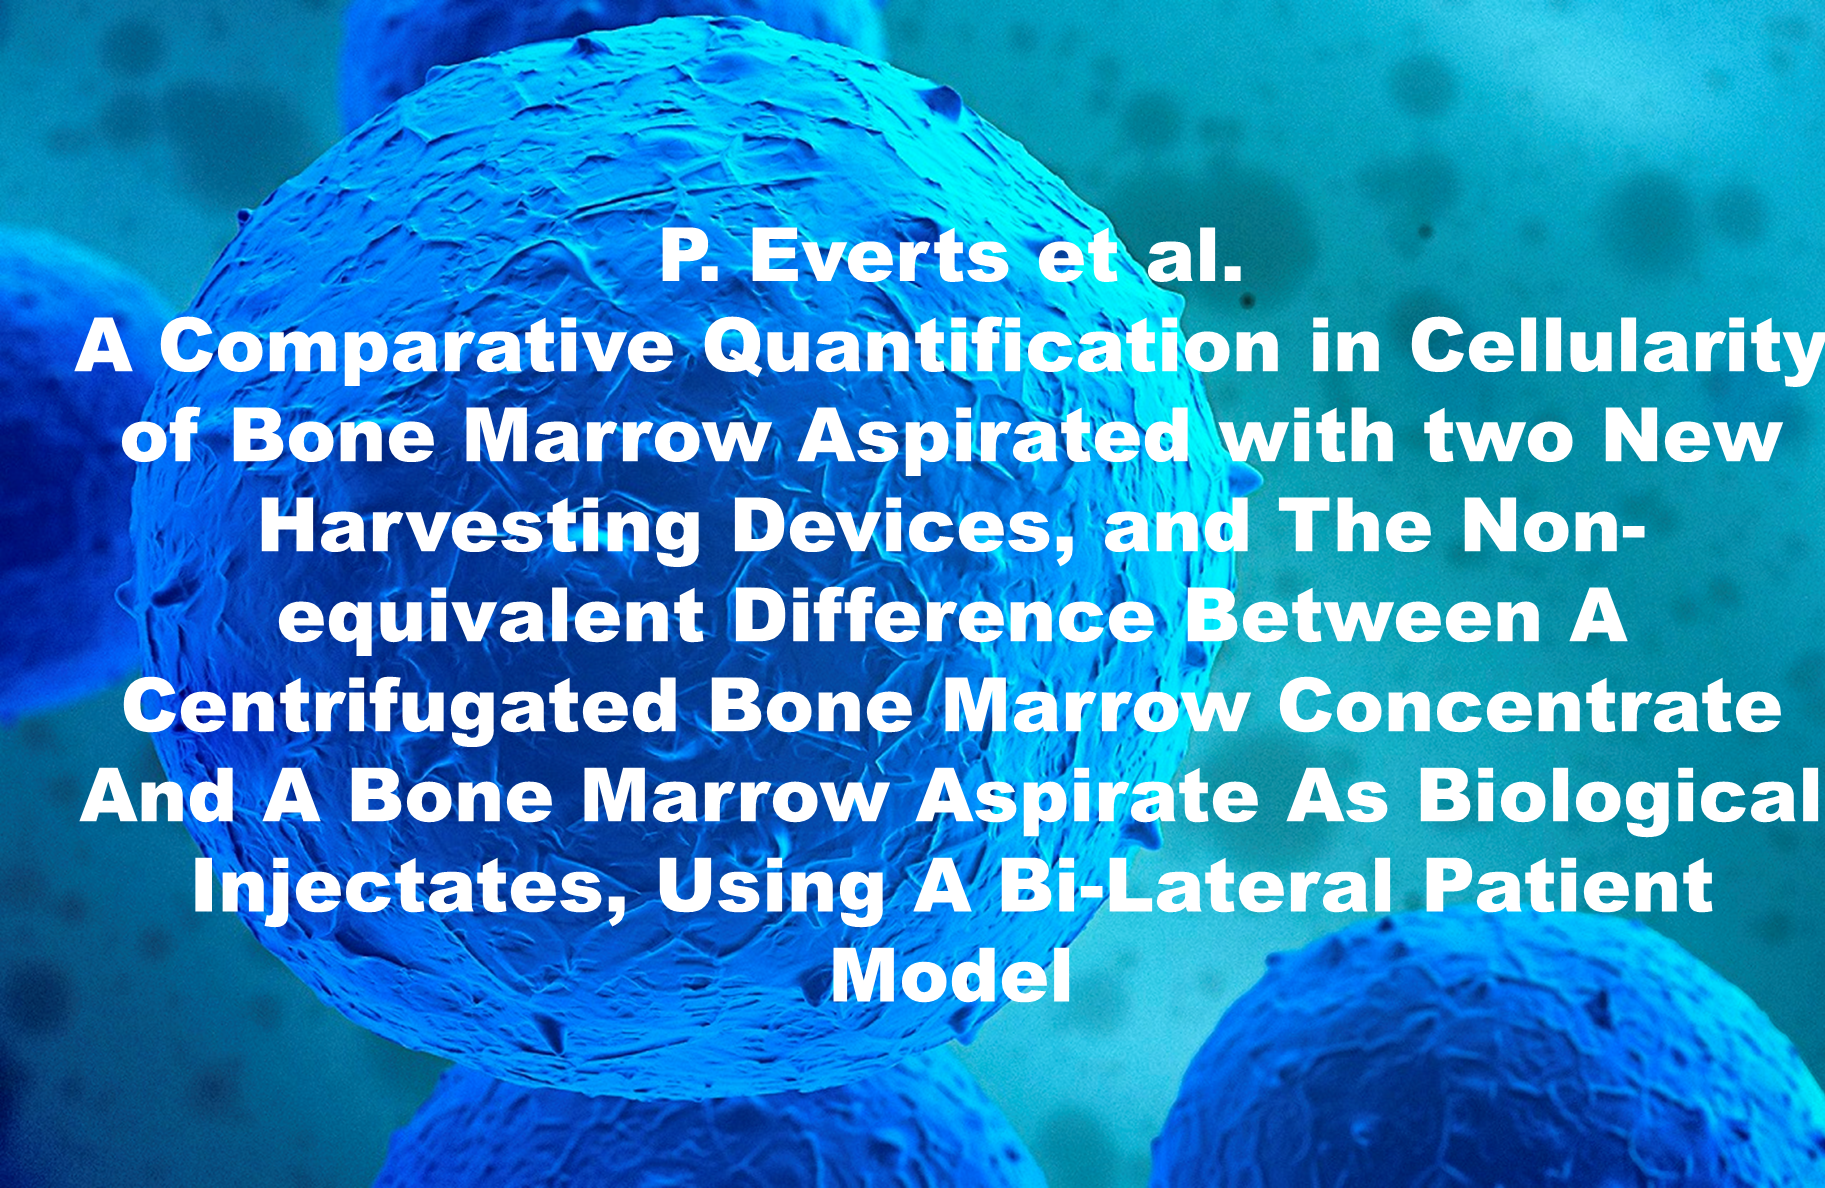 P. Everts et al. – A Comparative Quantification in Cellularity of Bone Marrow Aspirated with two New Harvesting Devices